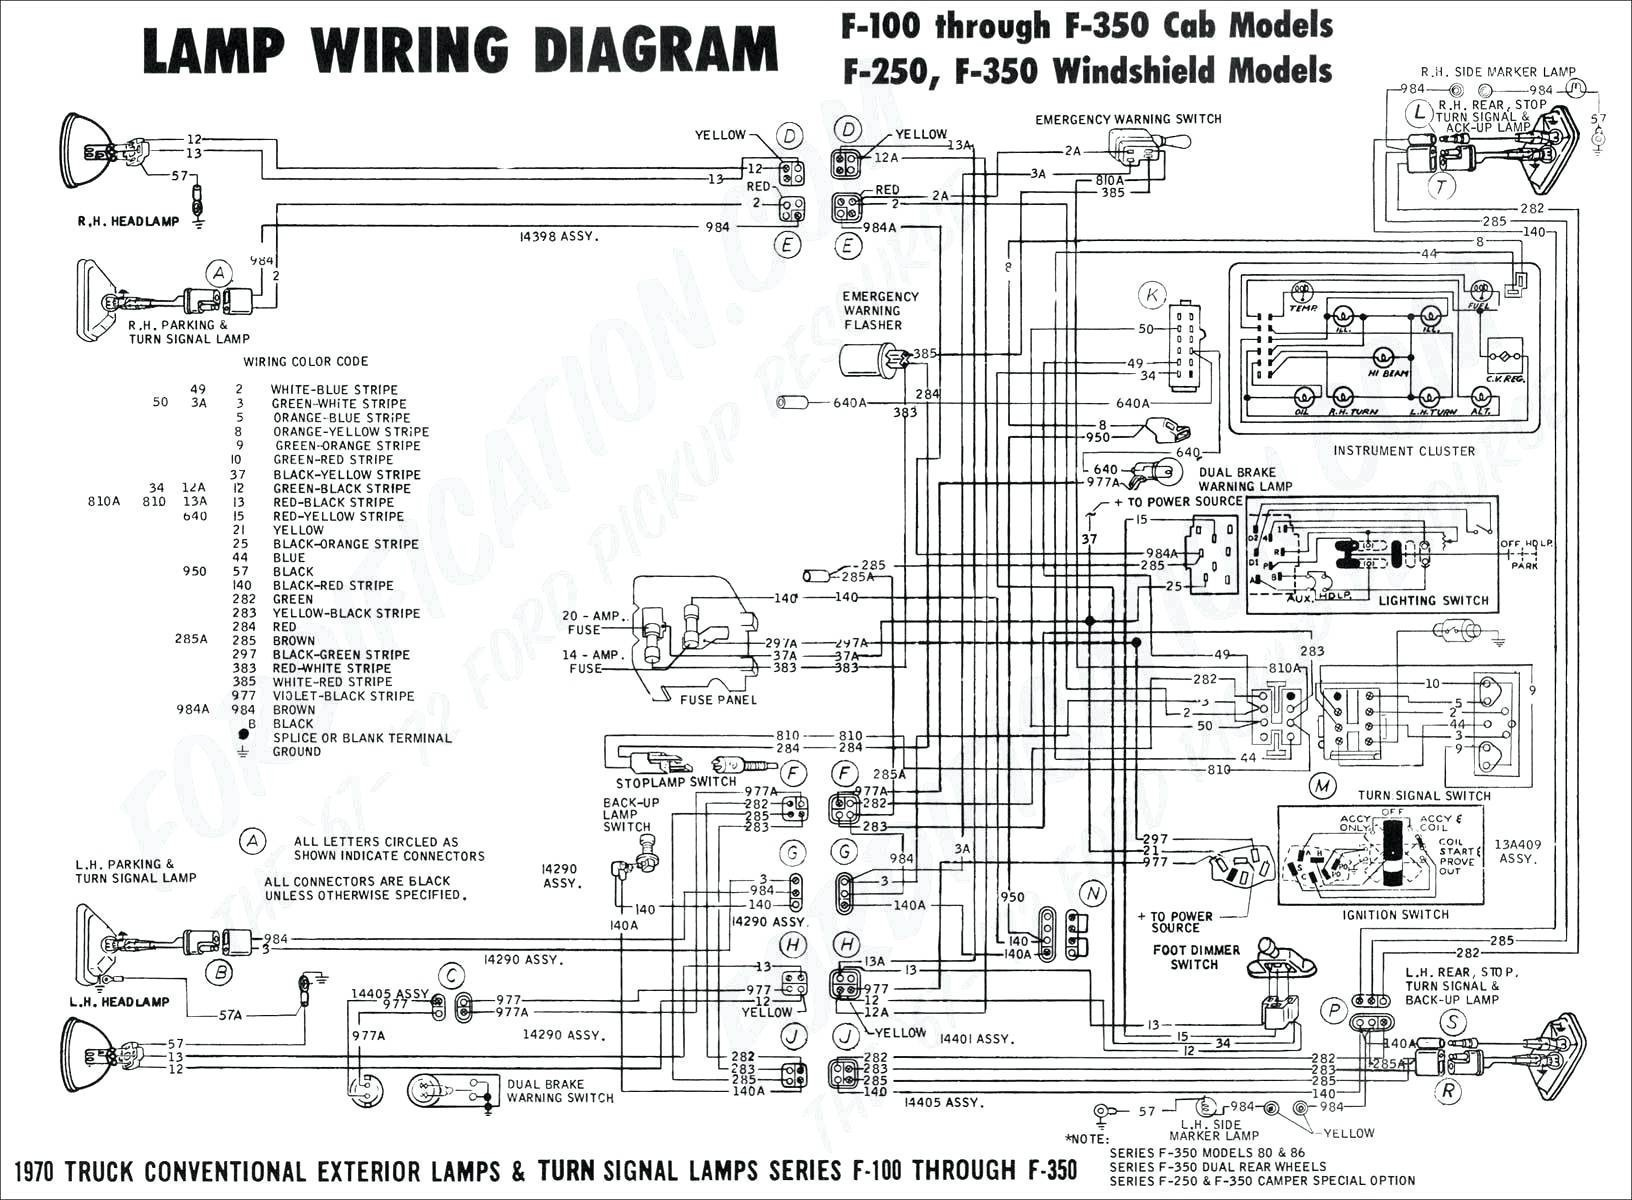 2004 Volvo S40 Engine Diagram Refrence Wiring Diagram Alternator Warning Light Of 2004 Volvo S40 Engine Diagram